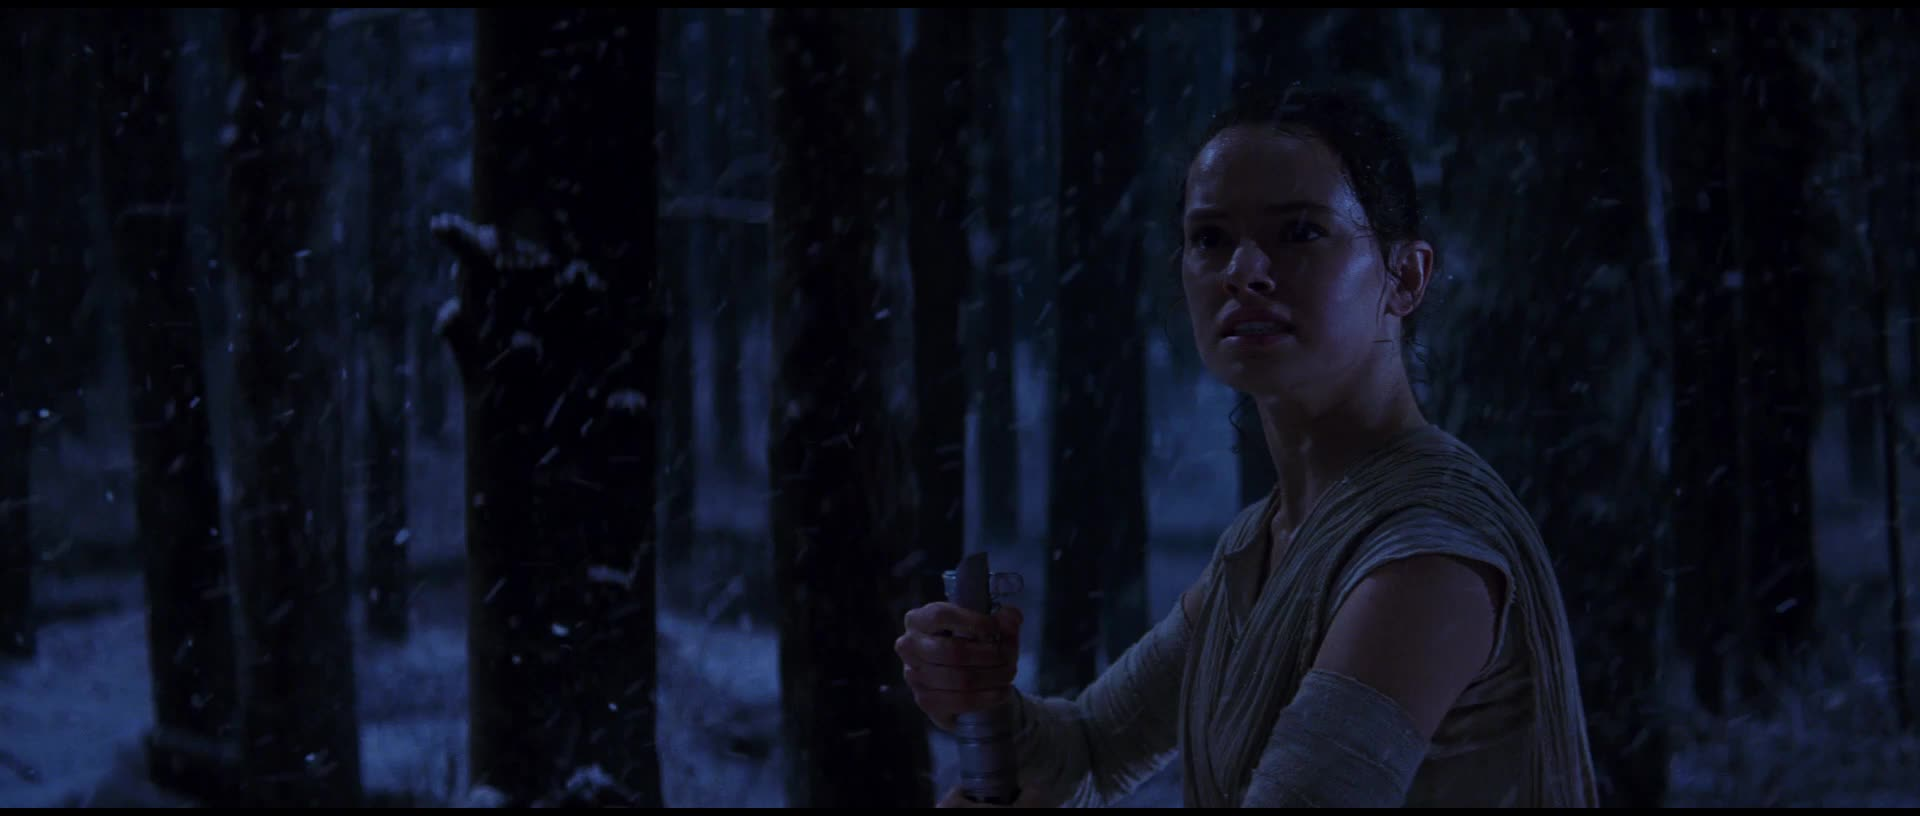 daisy ridley, rey, star wars, star wars the force awakens, the force awakens, Star Wars - Lightsaber Gifs - Rey GIFs